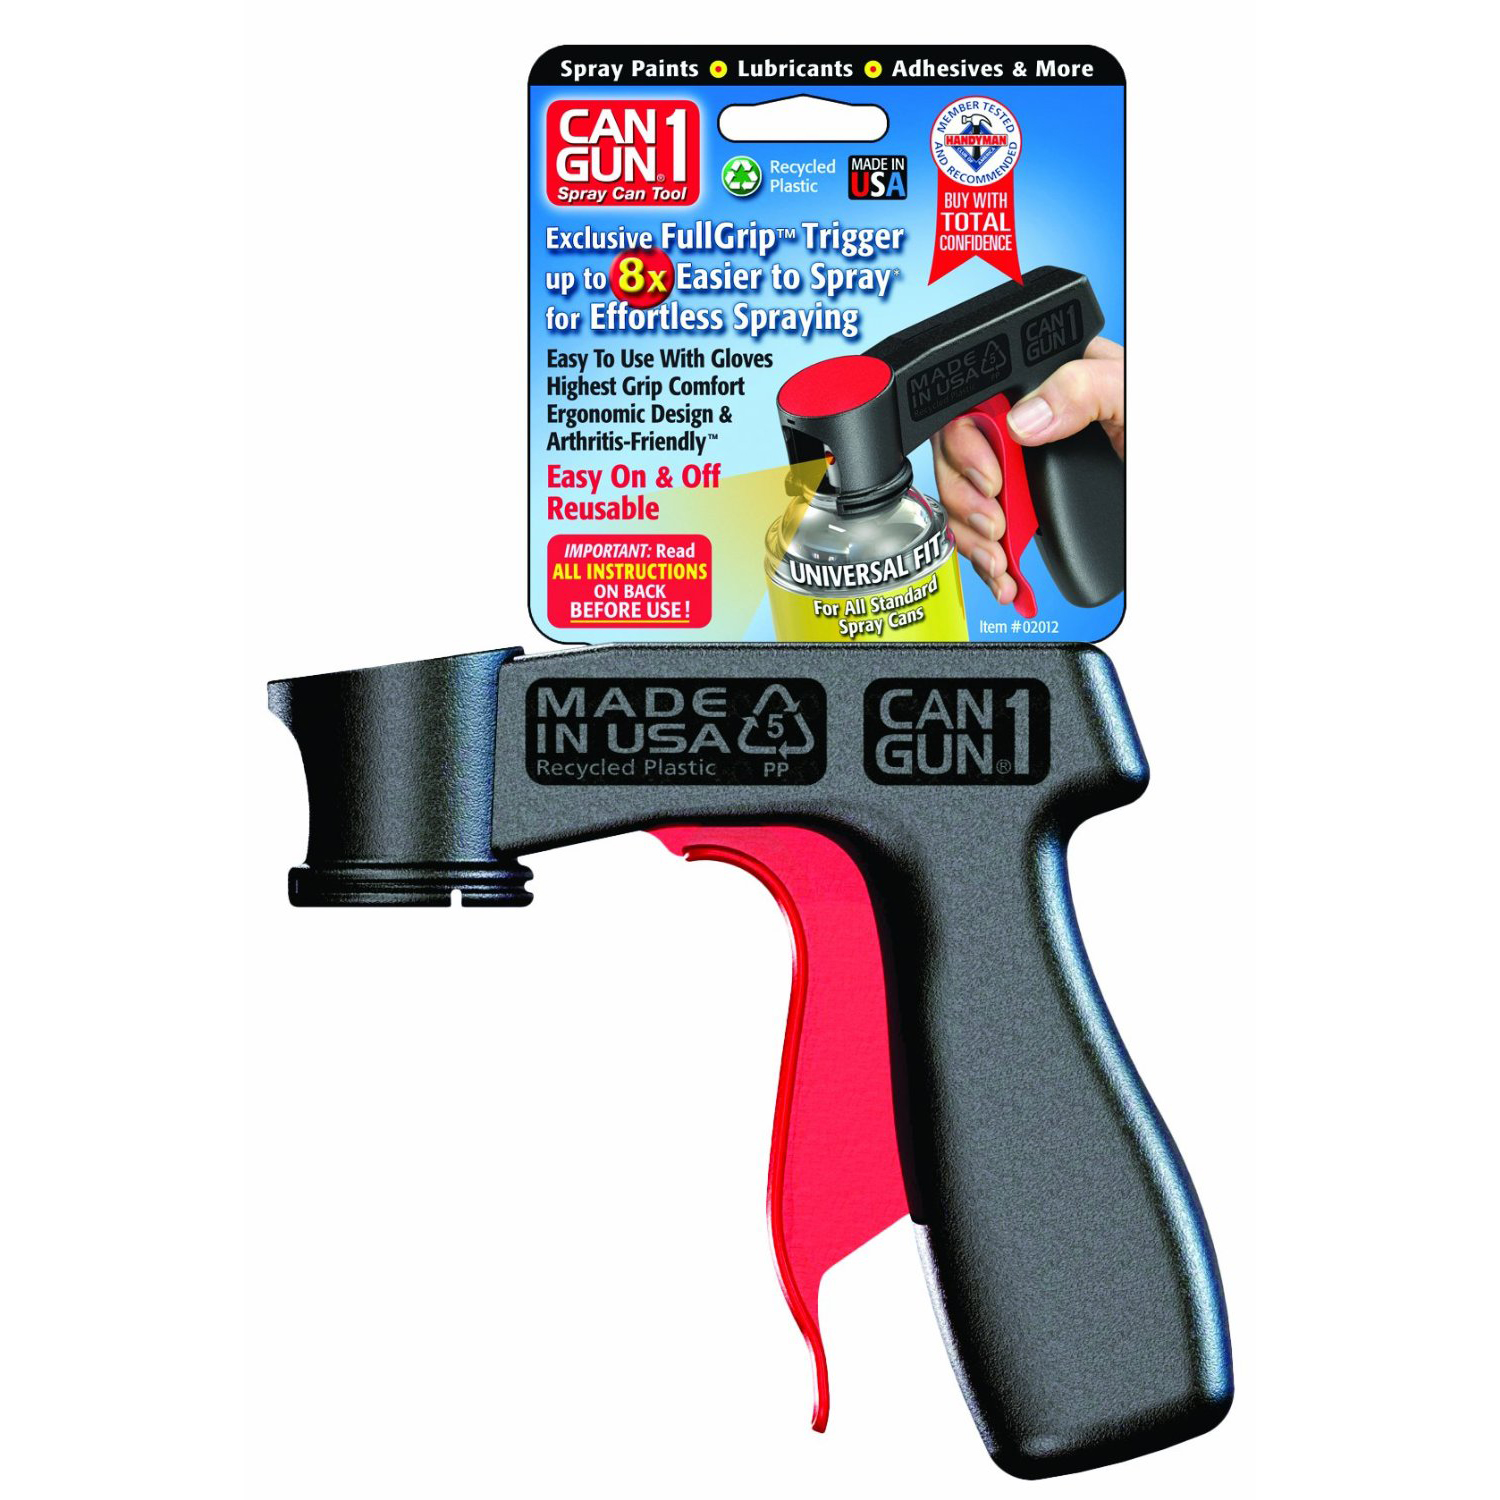 Can gun1 full grip trigger spray can tool recycled plastic for Spray gun for oil based paints